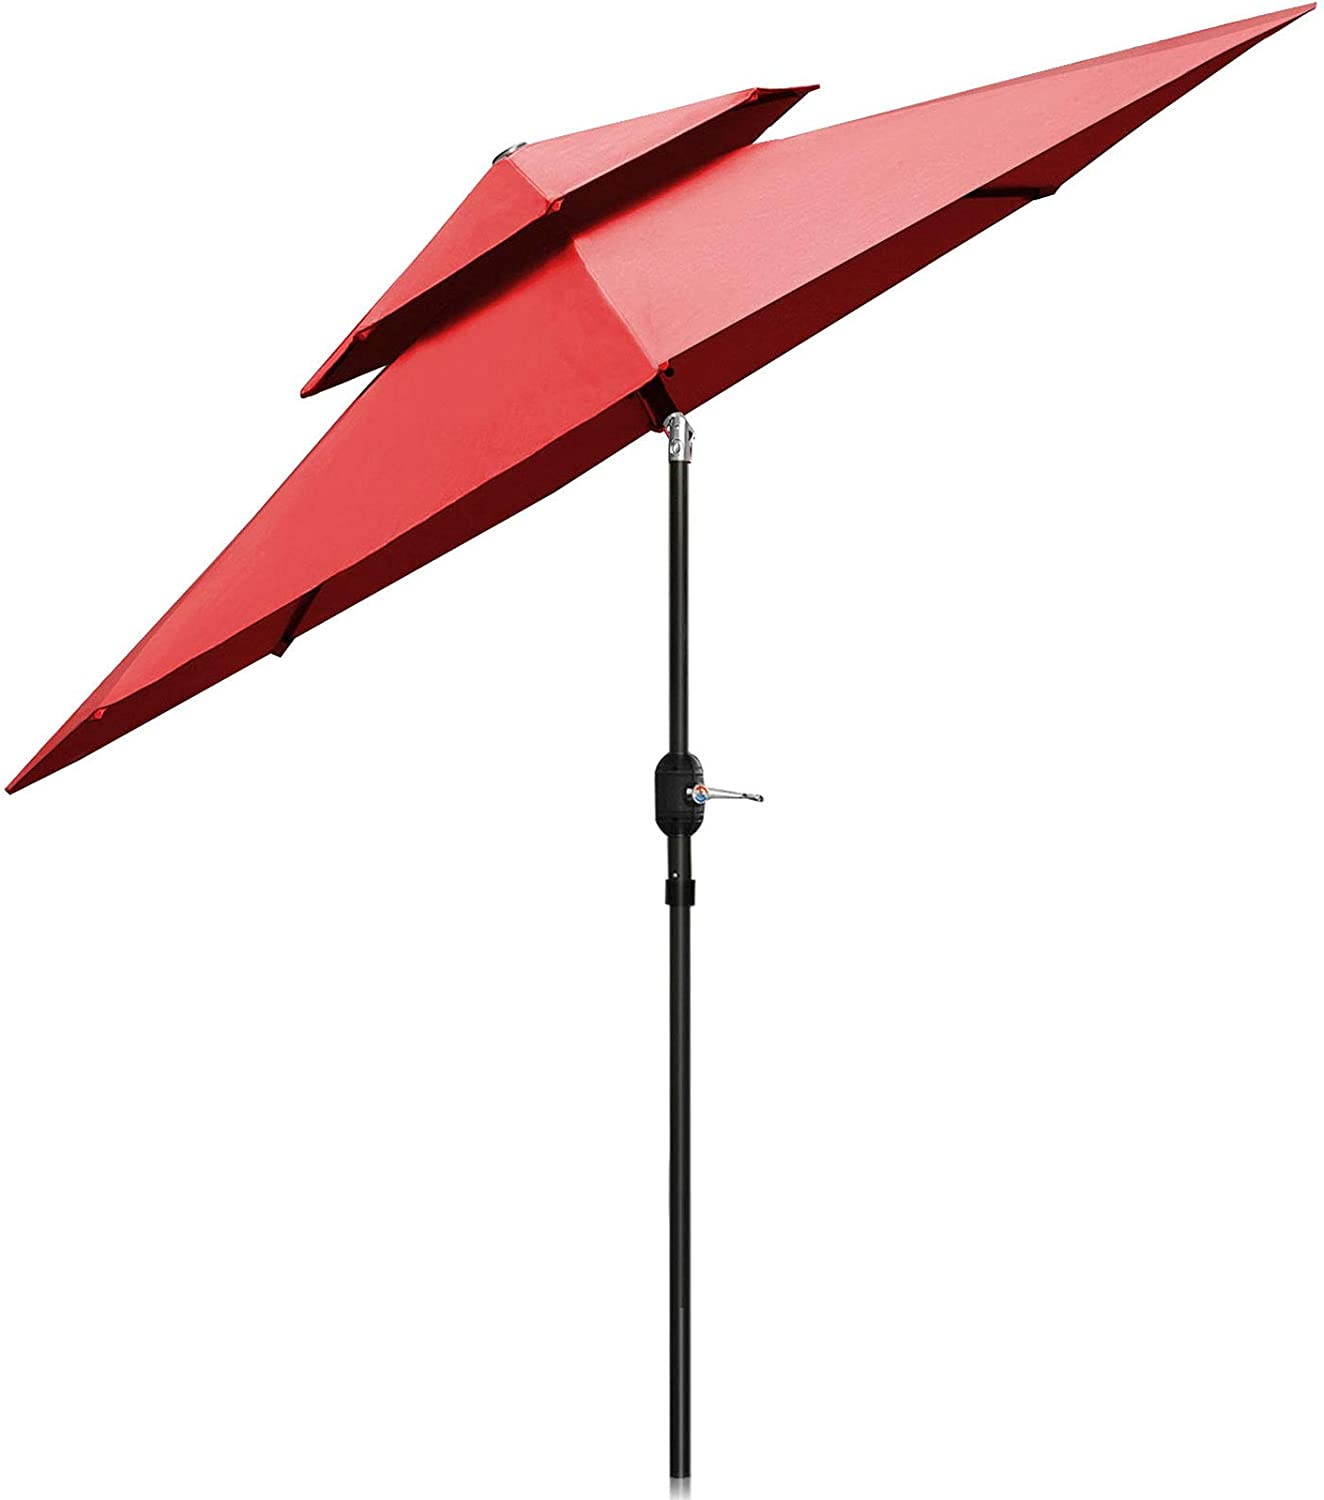 Patiassy Upgraded 9 Feet Double Top Outdoor Patio Umbrella with Push Button Tilt and Crank Lift Ventilation, 8 Sturdy Ribs, 240 GSM No-Fading Fabric, 5 Years Warranty